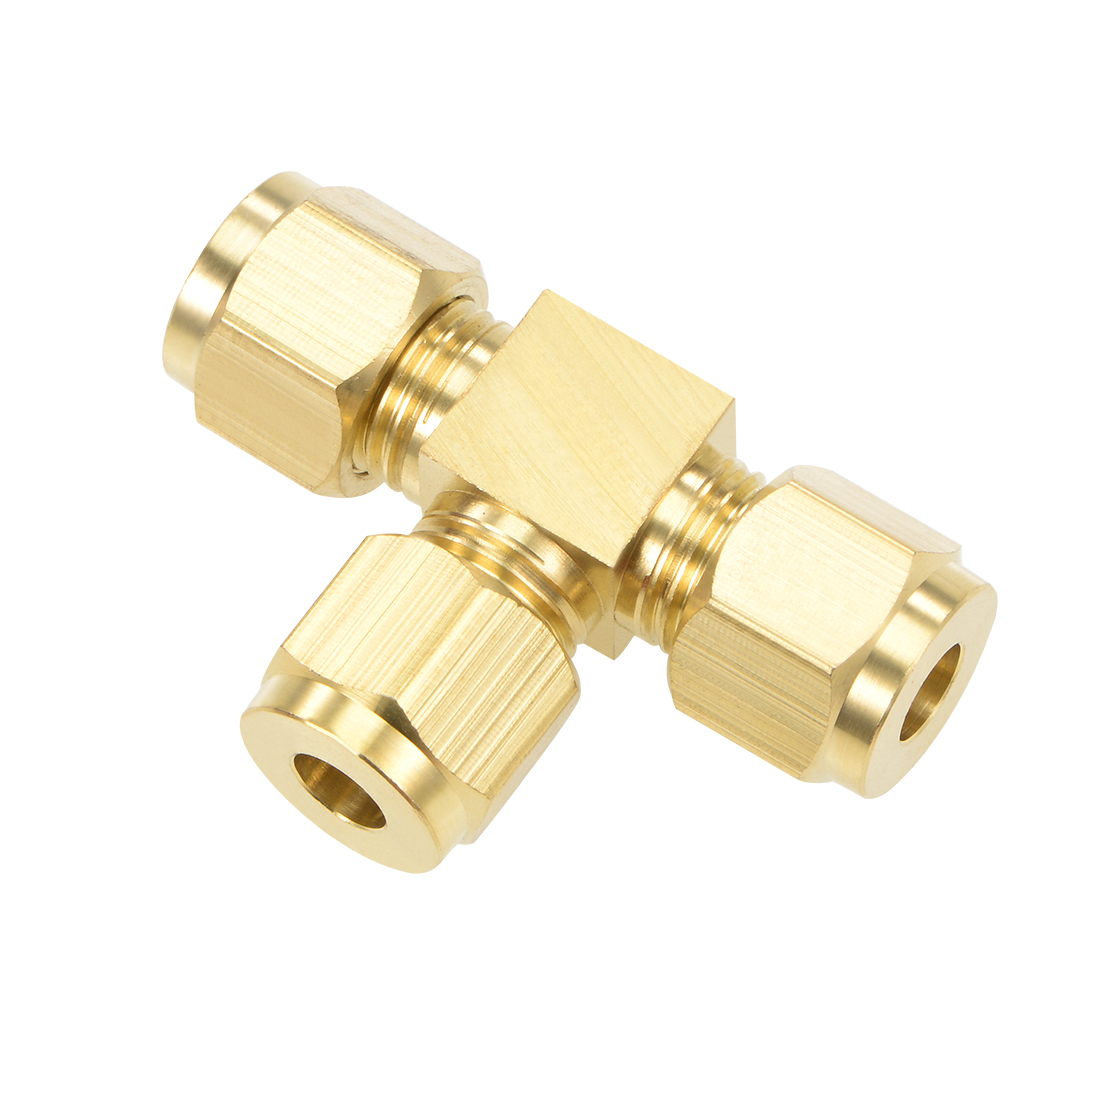 Brass Compression Tube Fitting 6mm OD Tee Pipe Adapter Water Irrigation